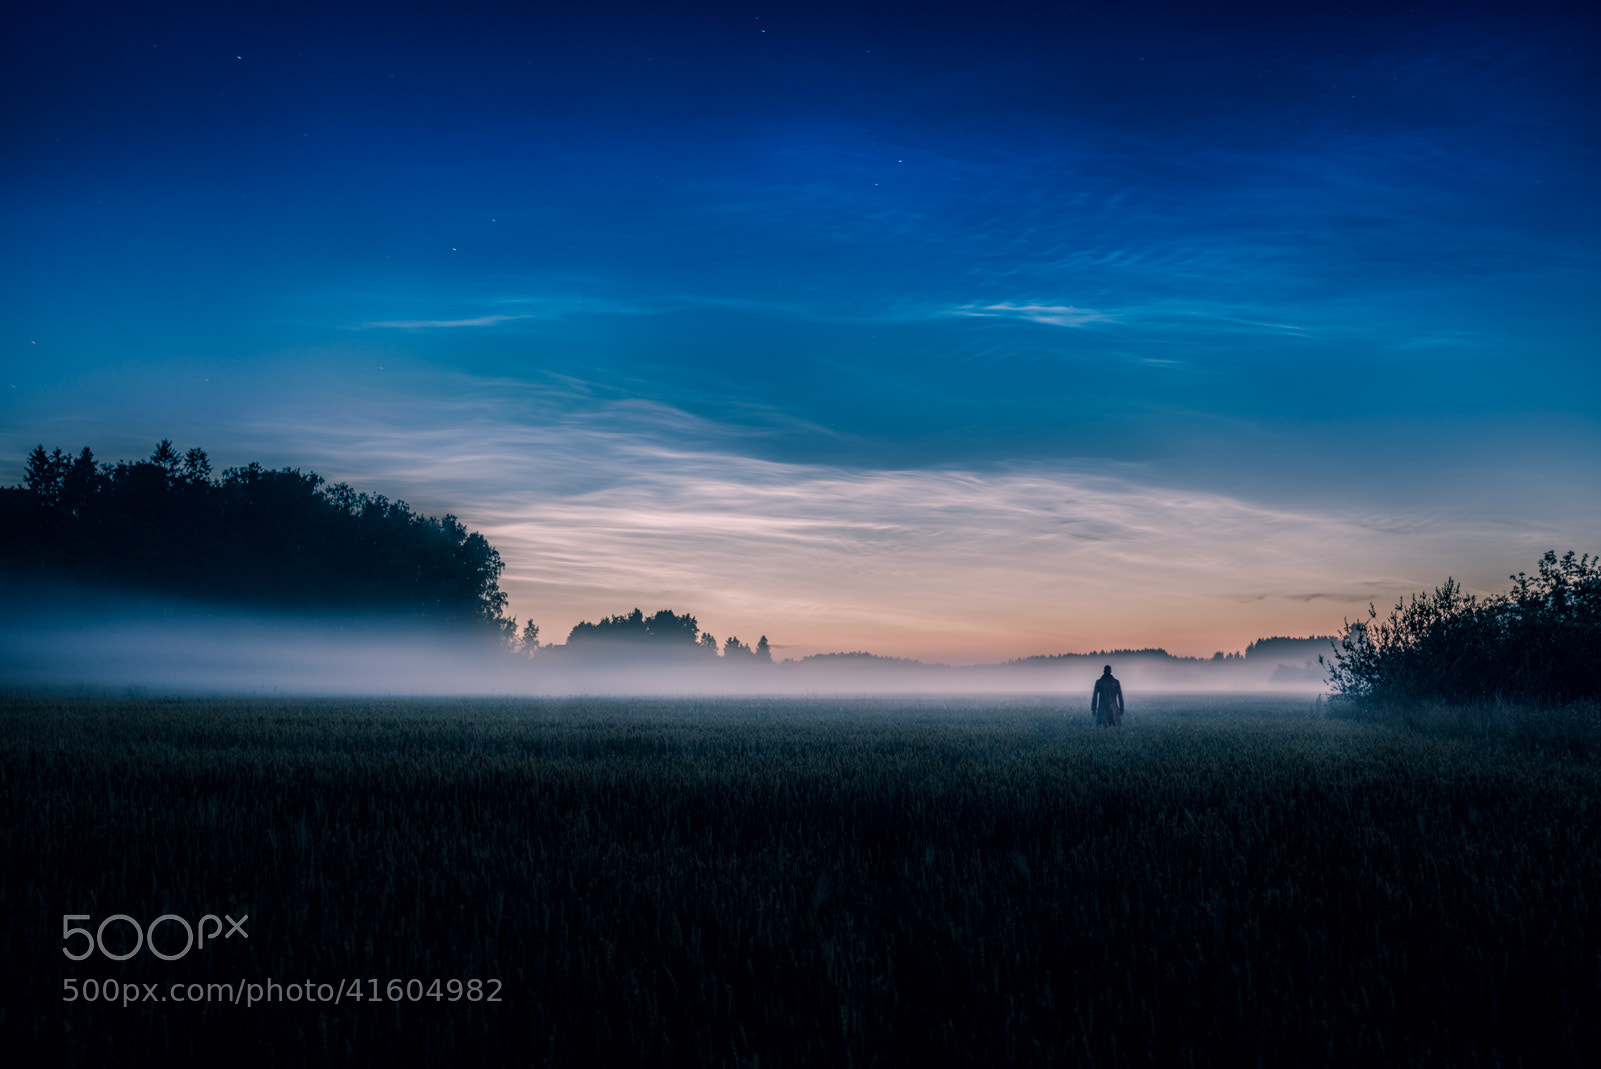 Photograph Noctilucent Night by Mikko Lagerstedt on 500px